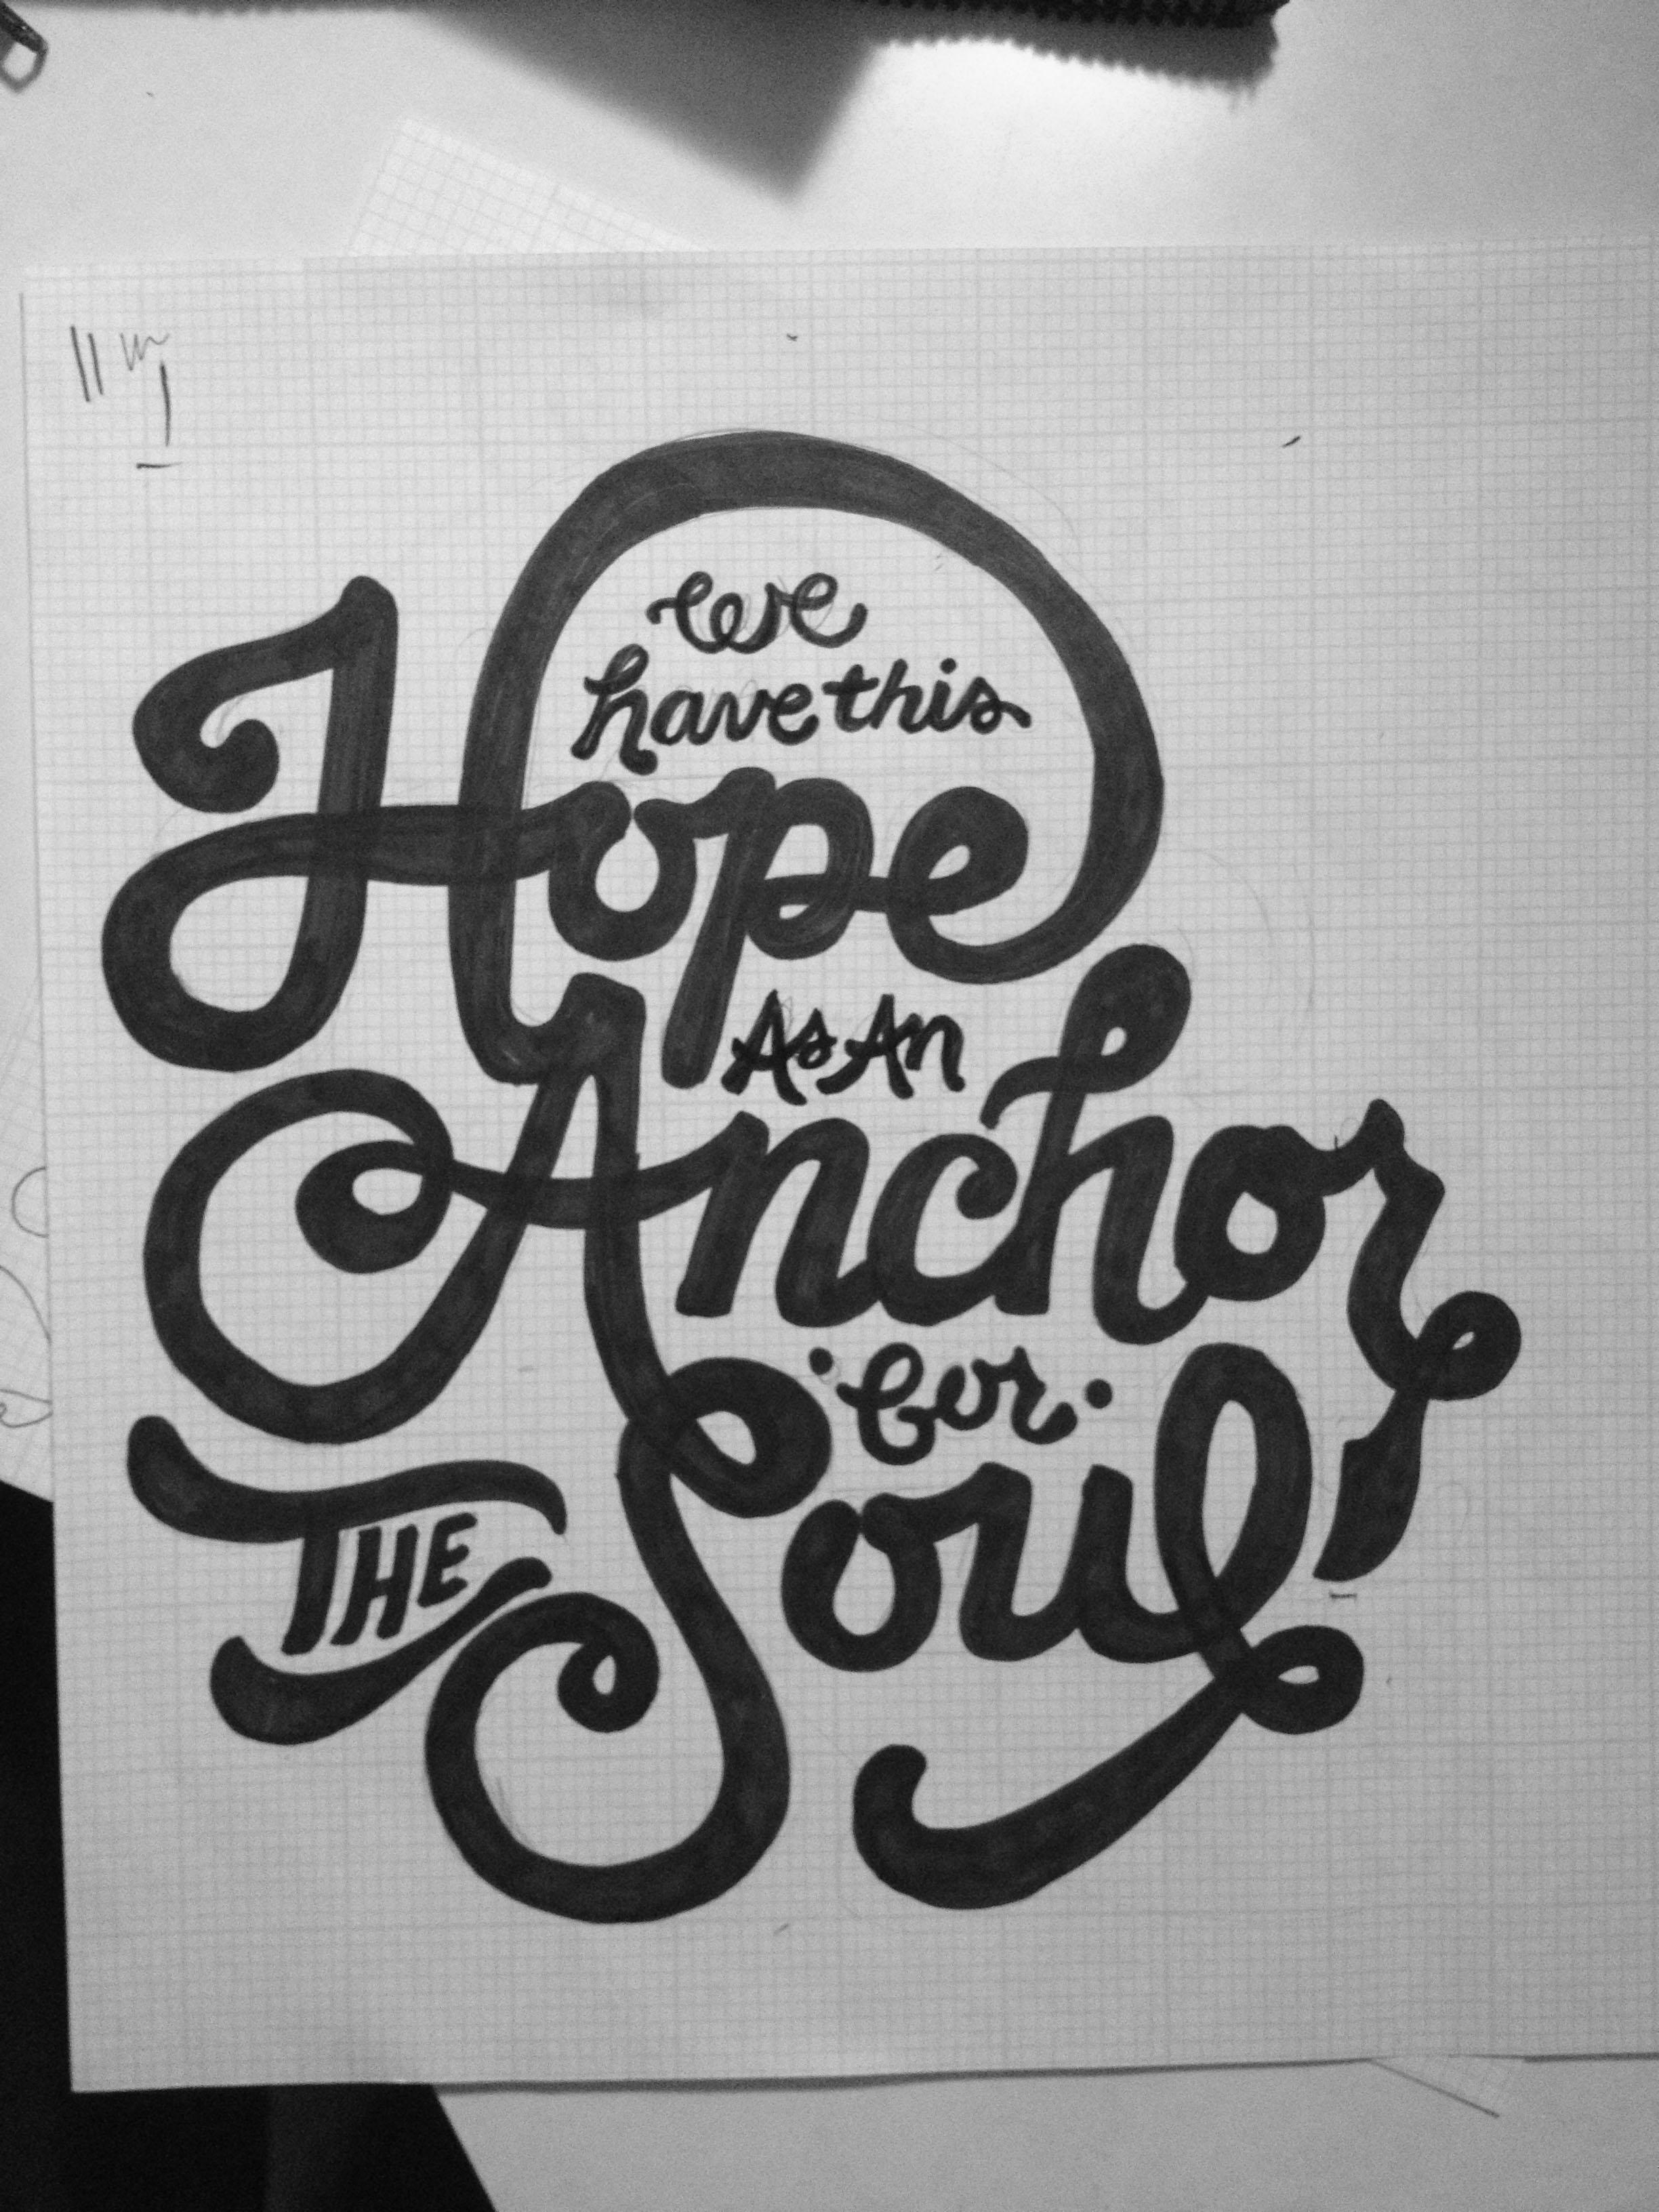 we have this hope... - image 1 - student project